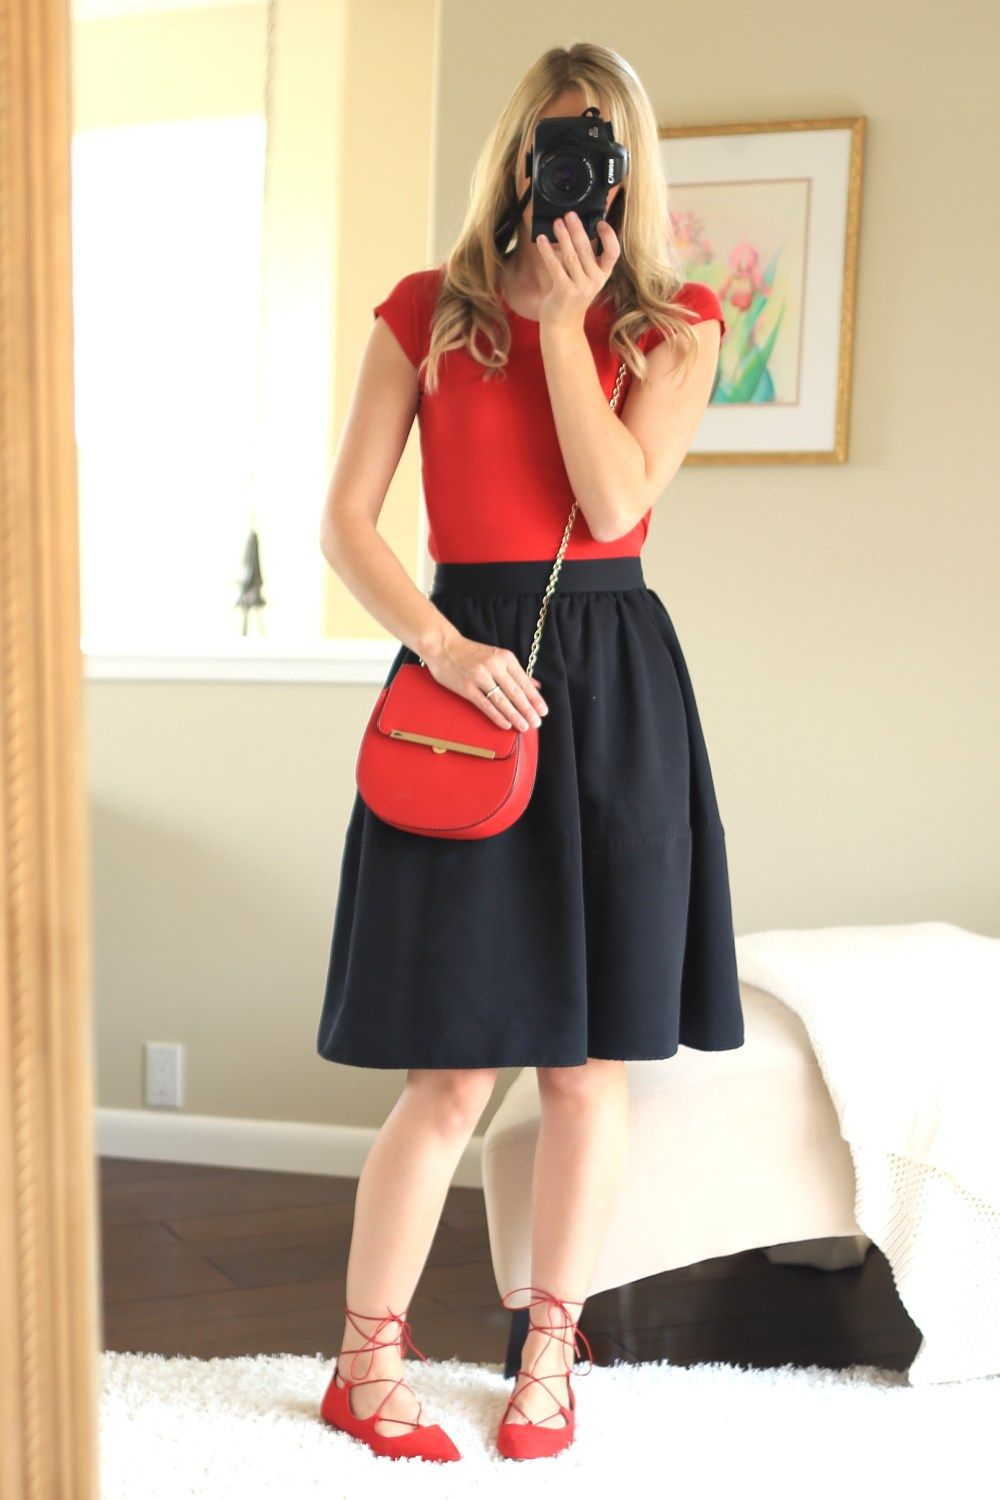 acc0fd590c16 Cute Christmas Outfits - Casual, Formal, and Dressy Casual Outfit ...